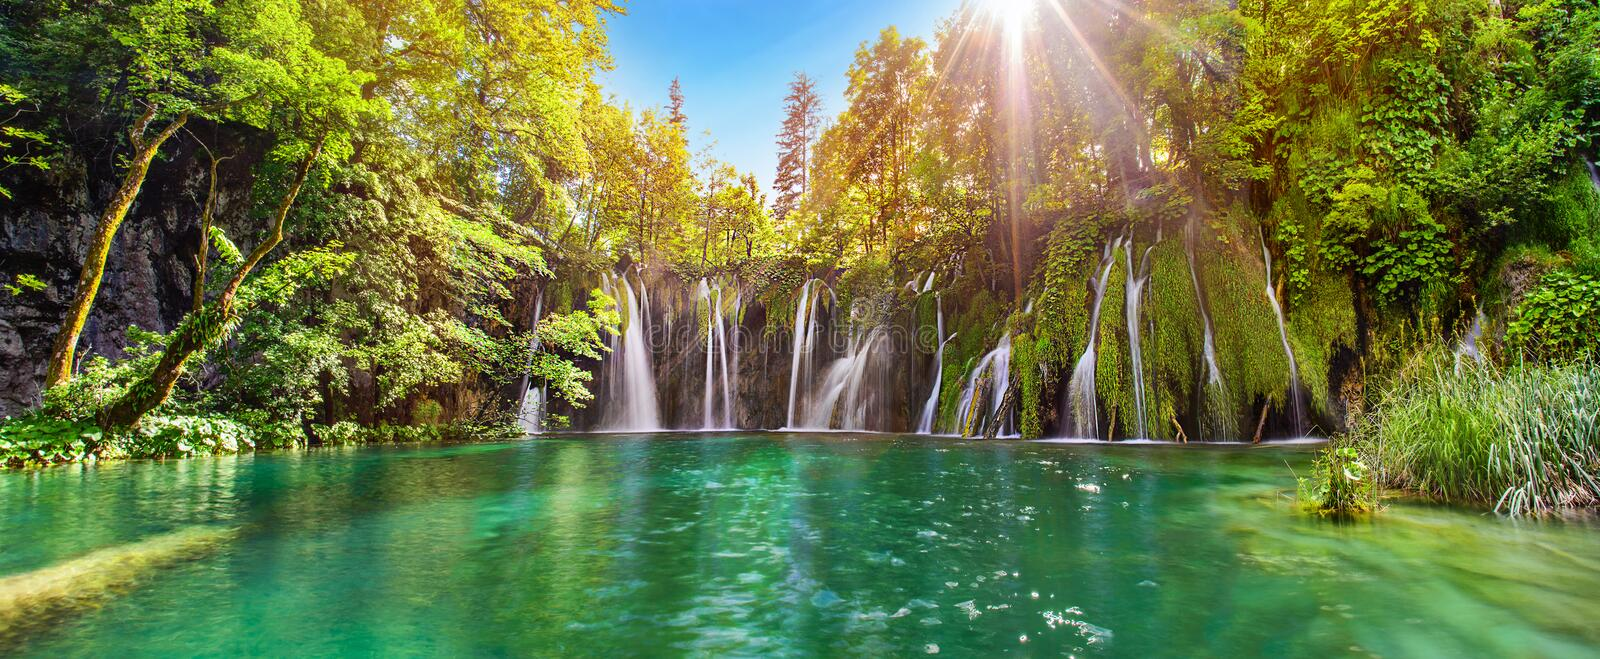 Erstaunliches Wasserfallpanorama im Plitvice See-Nationalpark, Kundenberaterin stockfotos